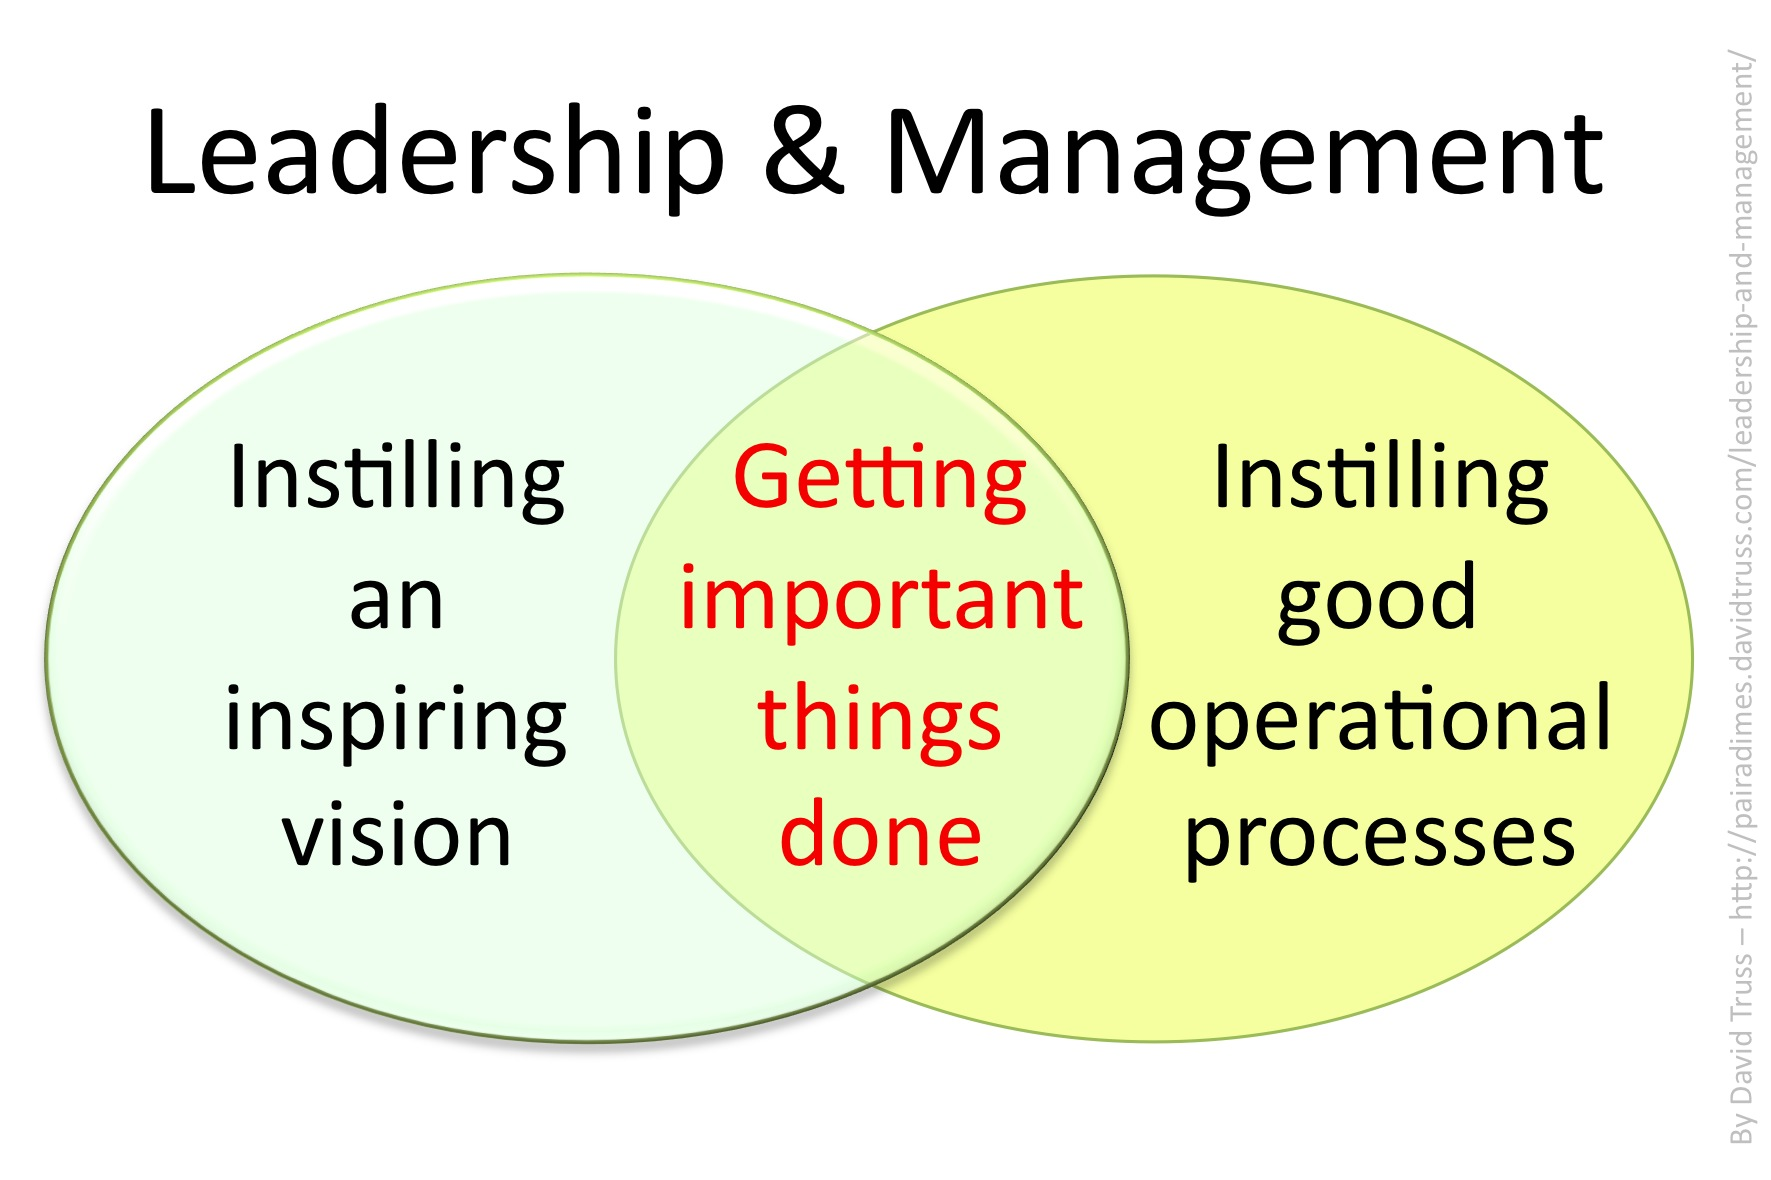 professionalism leadership comparision Authoritarian the authoritarian leadership style keeps main emphasis on the distinction of the authoritarian leader and their followers these types of leaders make sure to only create a distinct professional relationship.